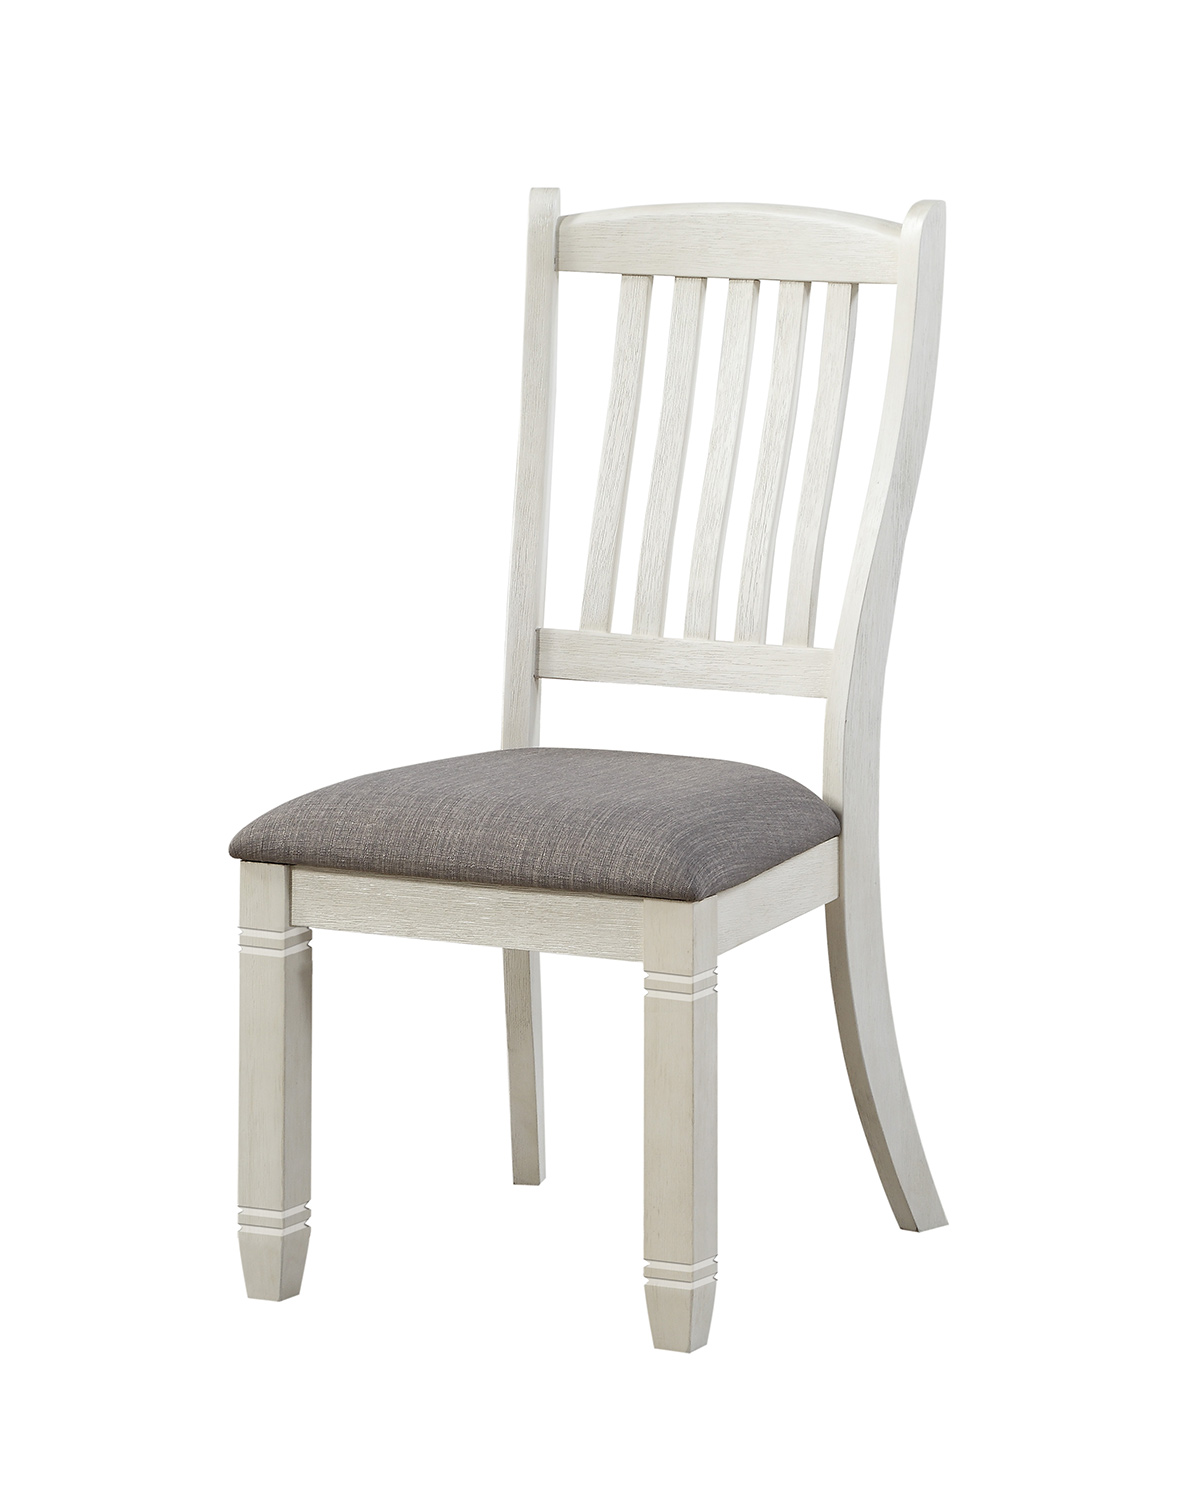 Homelegance Granby Side Chair - Antique White - Rosy Brown